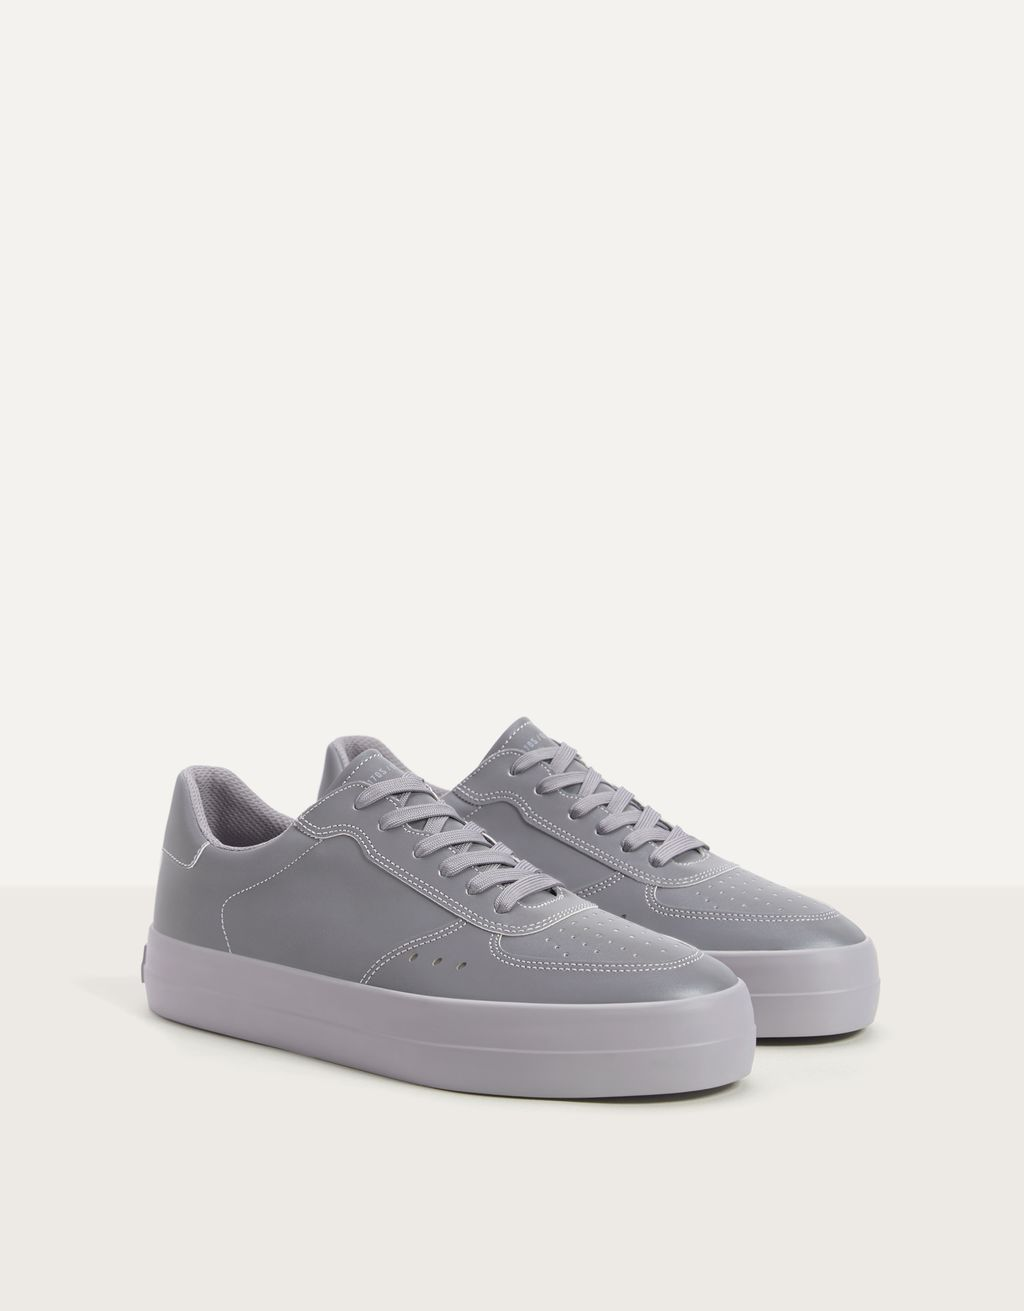 Men's reflective trainers